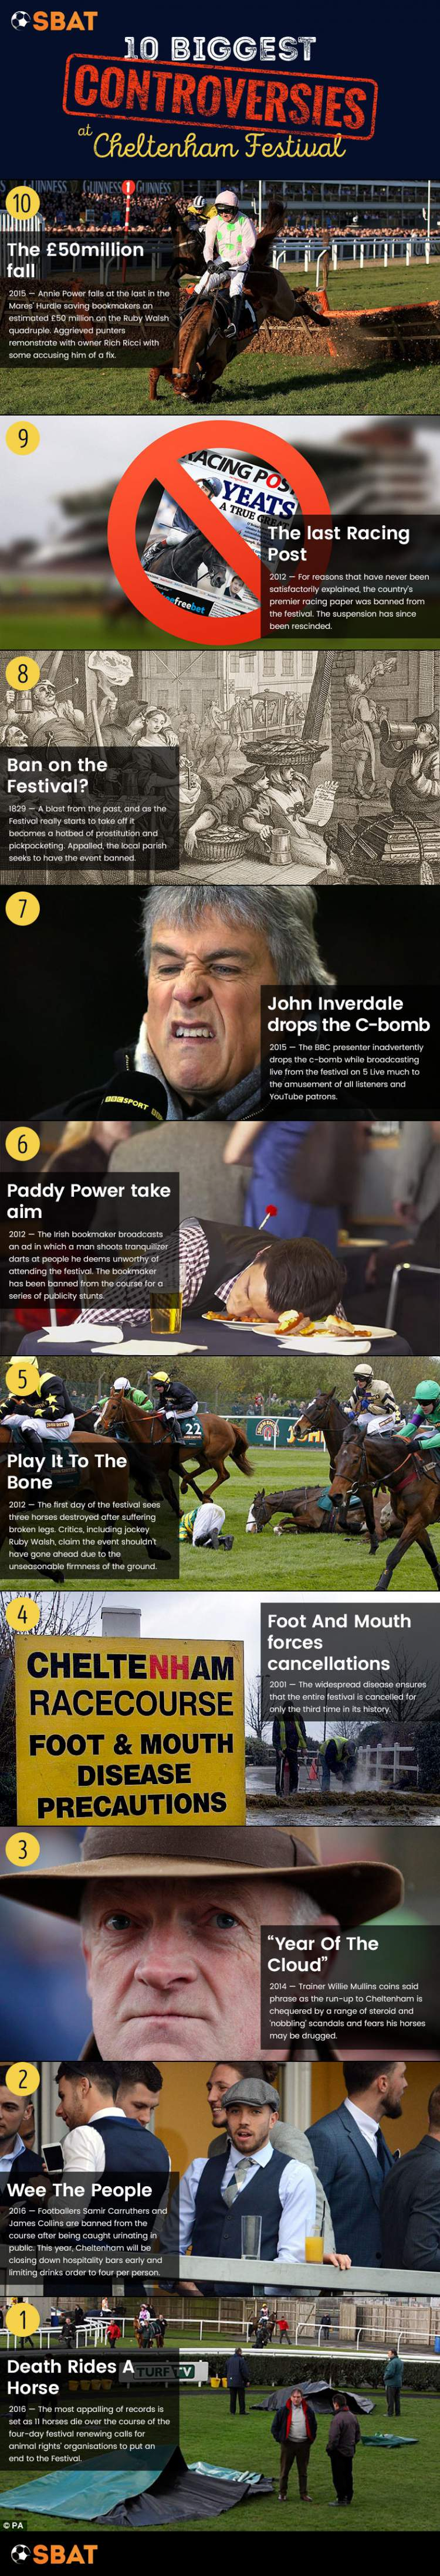 controversies-at-cheltenham-festival